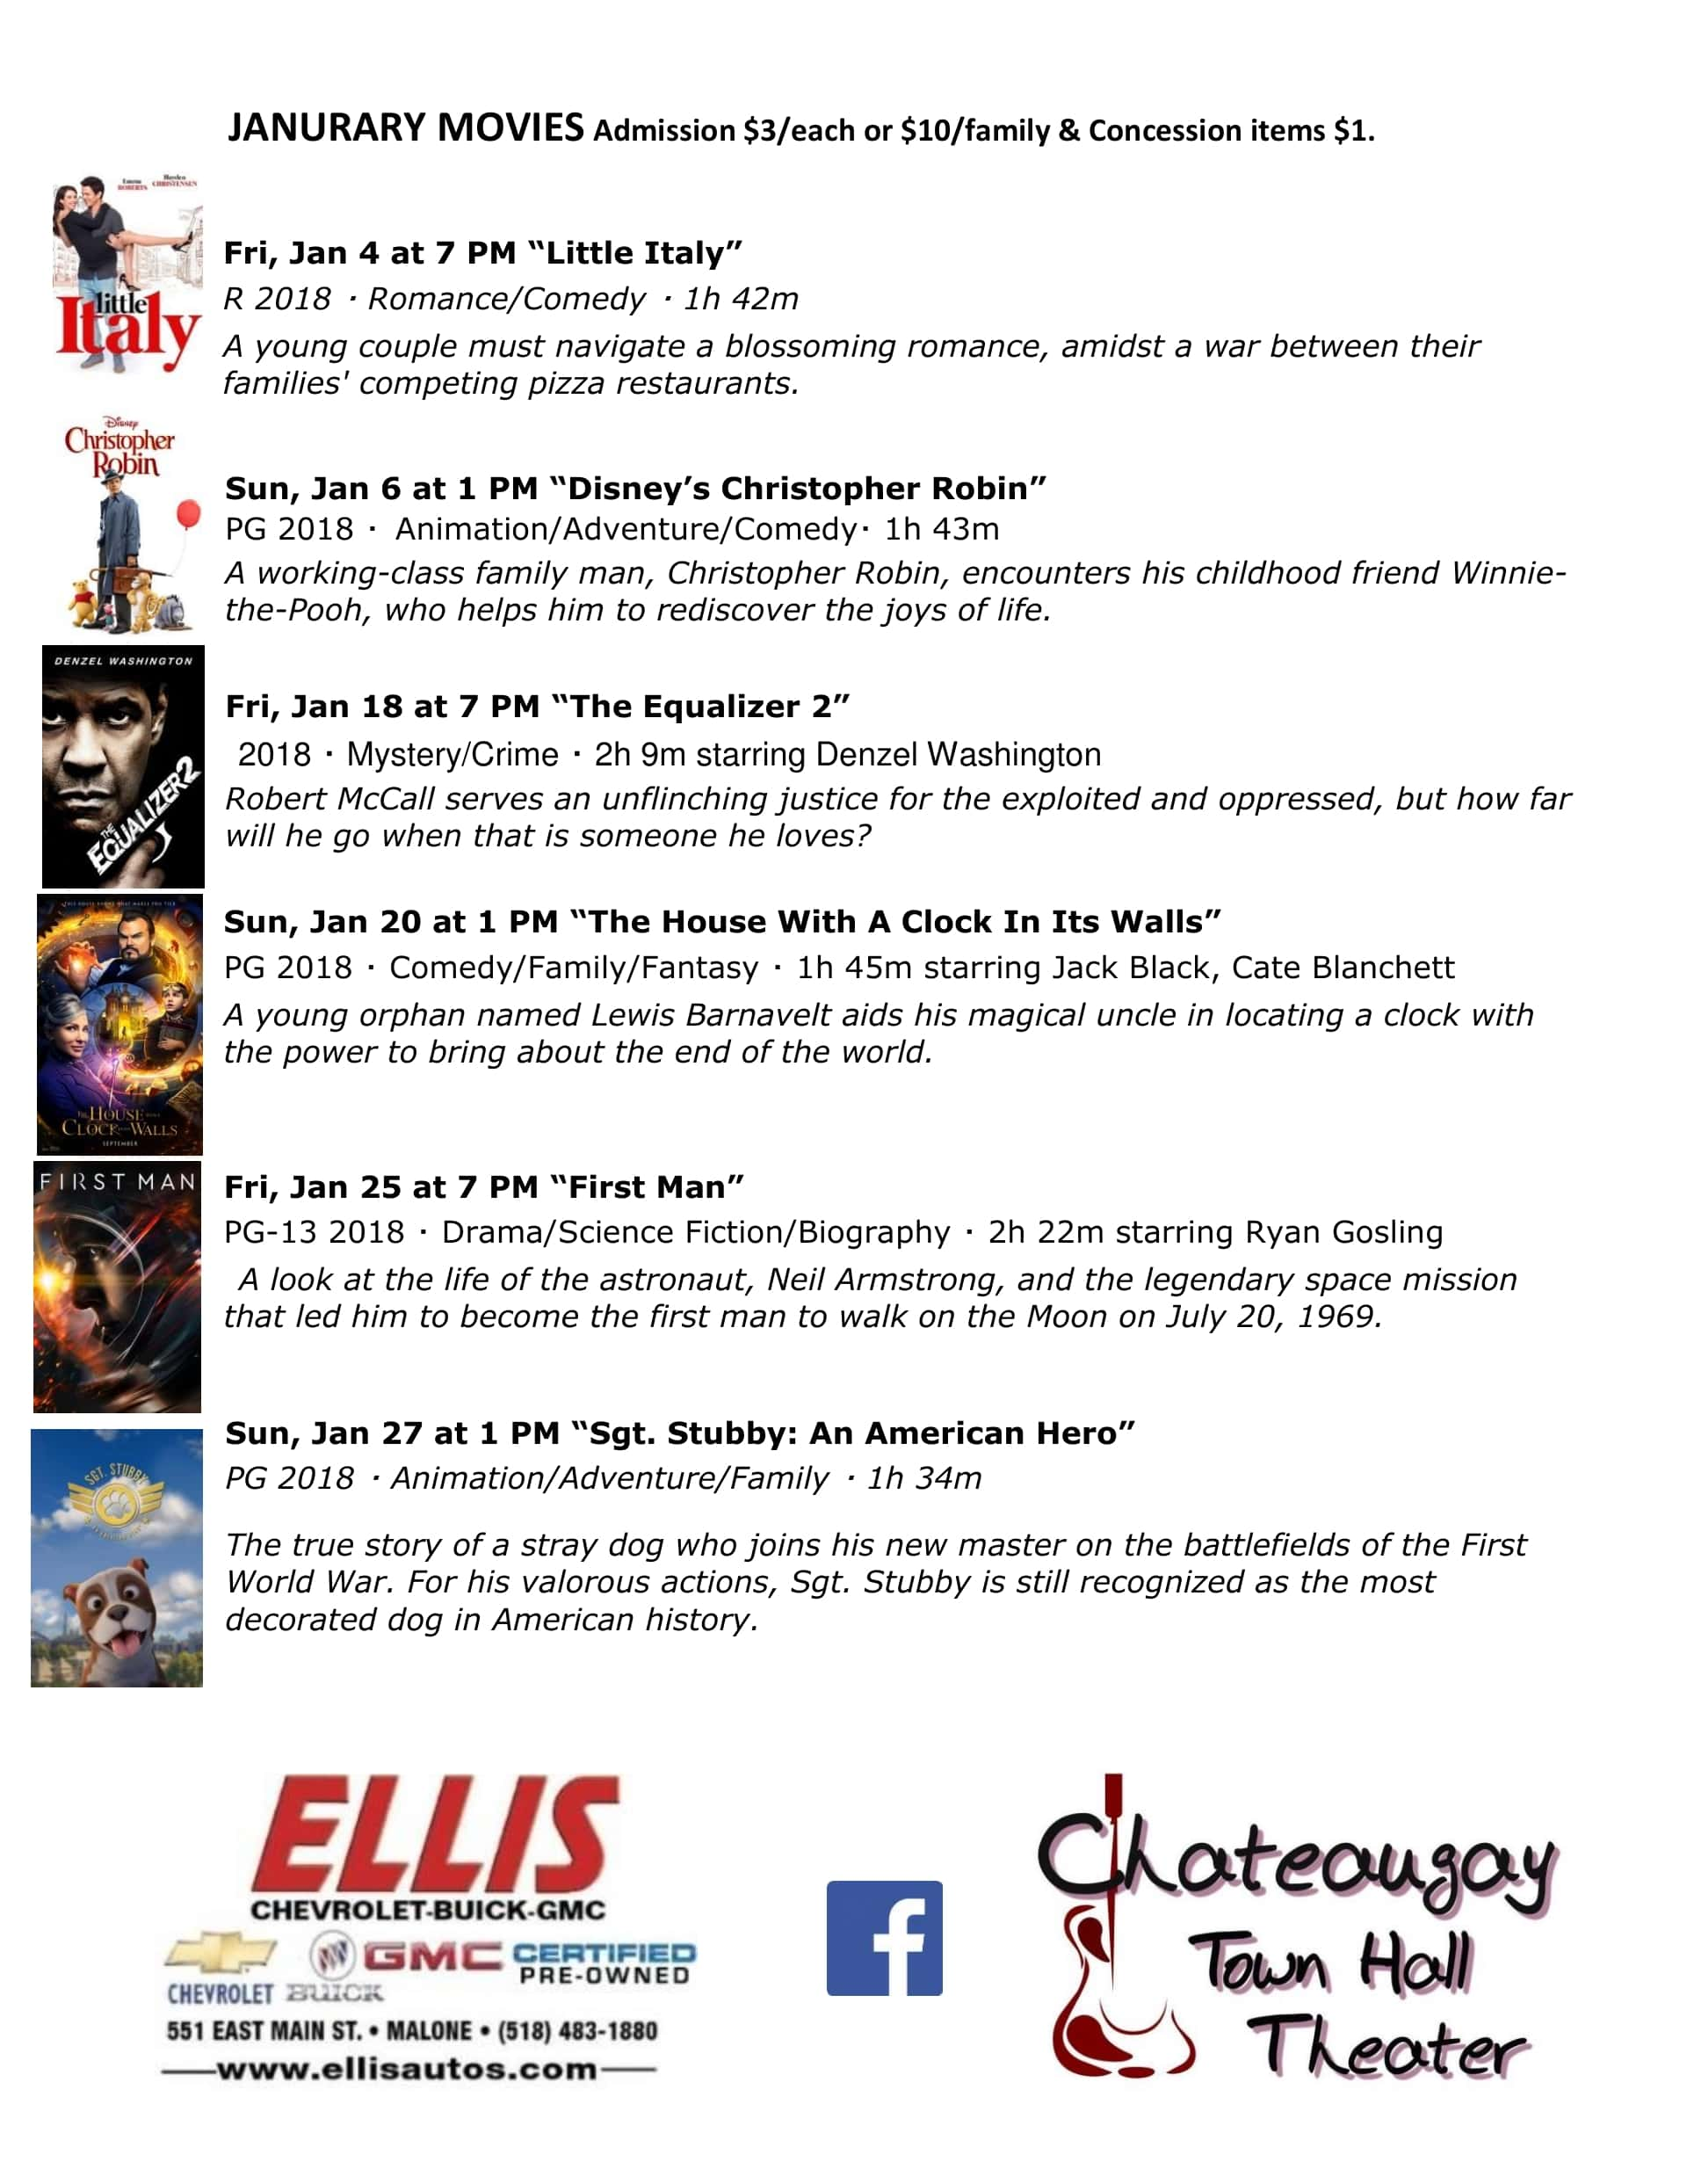 Chateaugay Theater January Movies | Wild Country 96 5